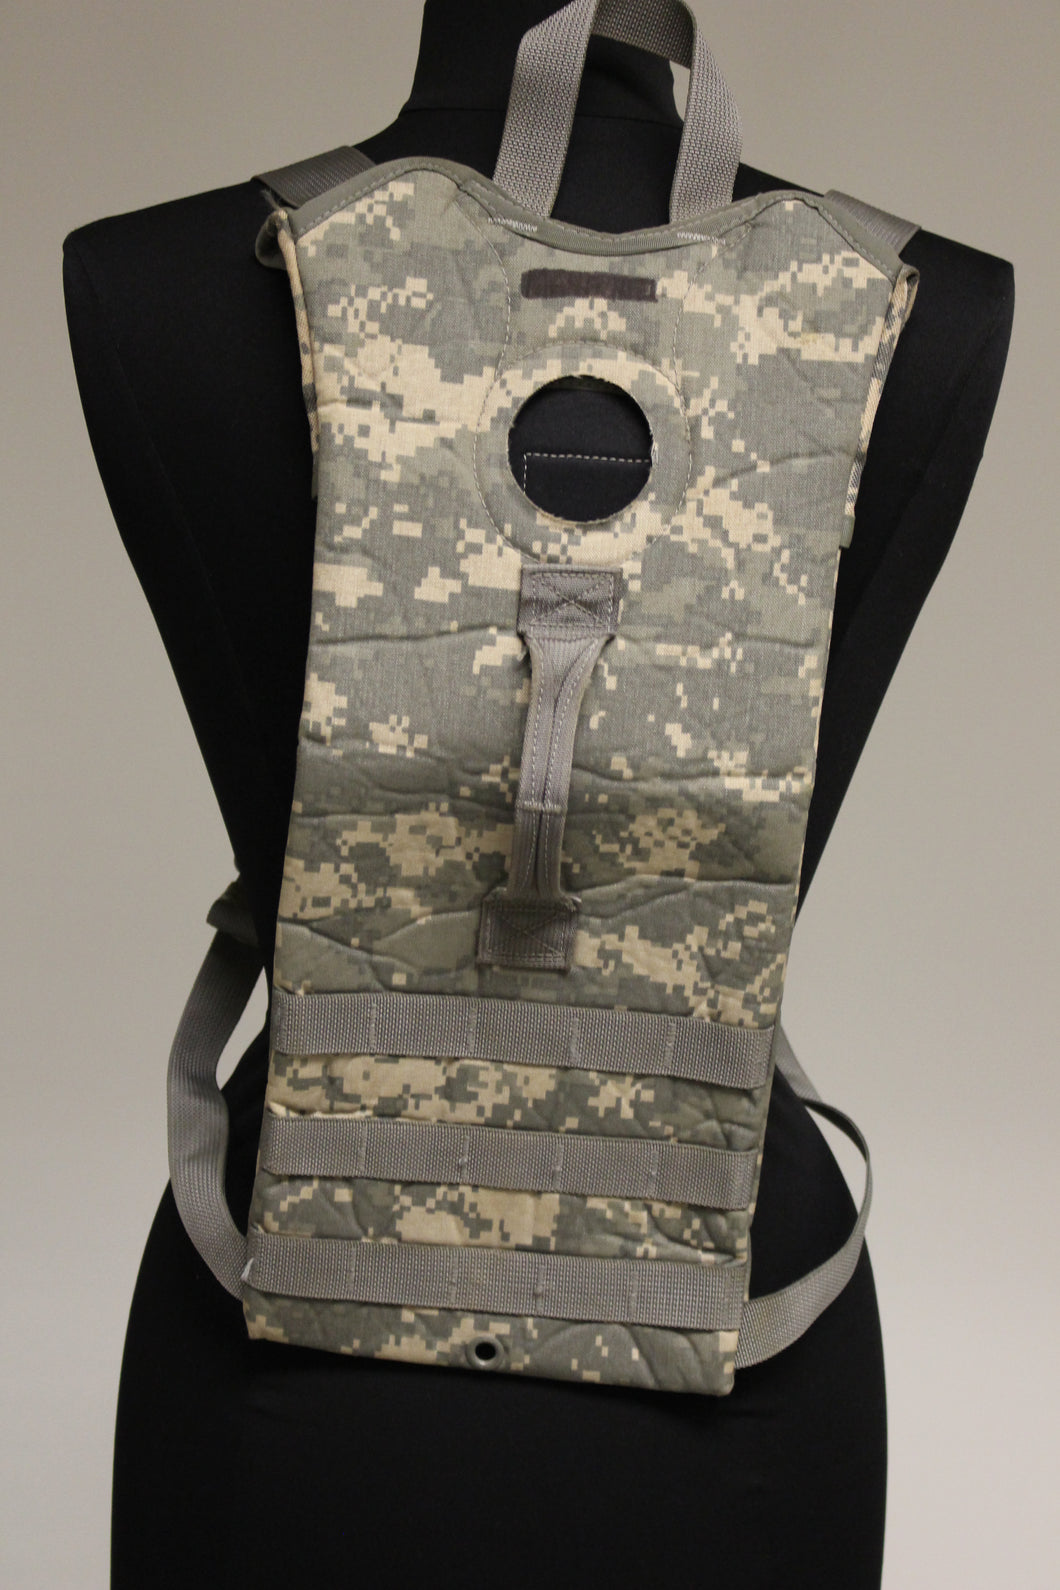 Army Molle II Hydration System Carrier, ACU, 8465-01-524-8362, Grade A